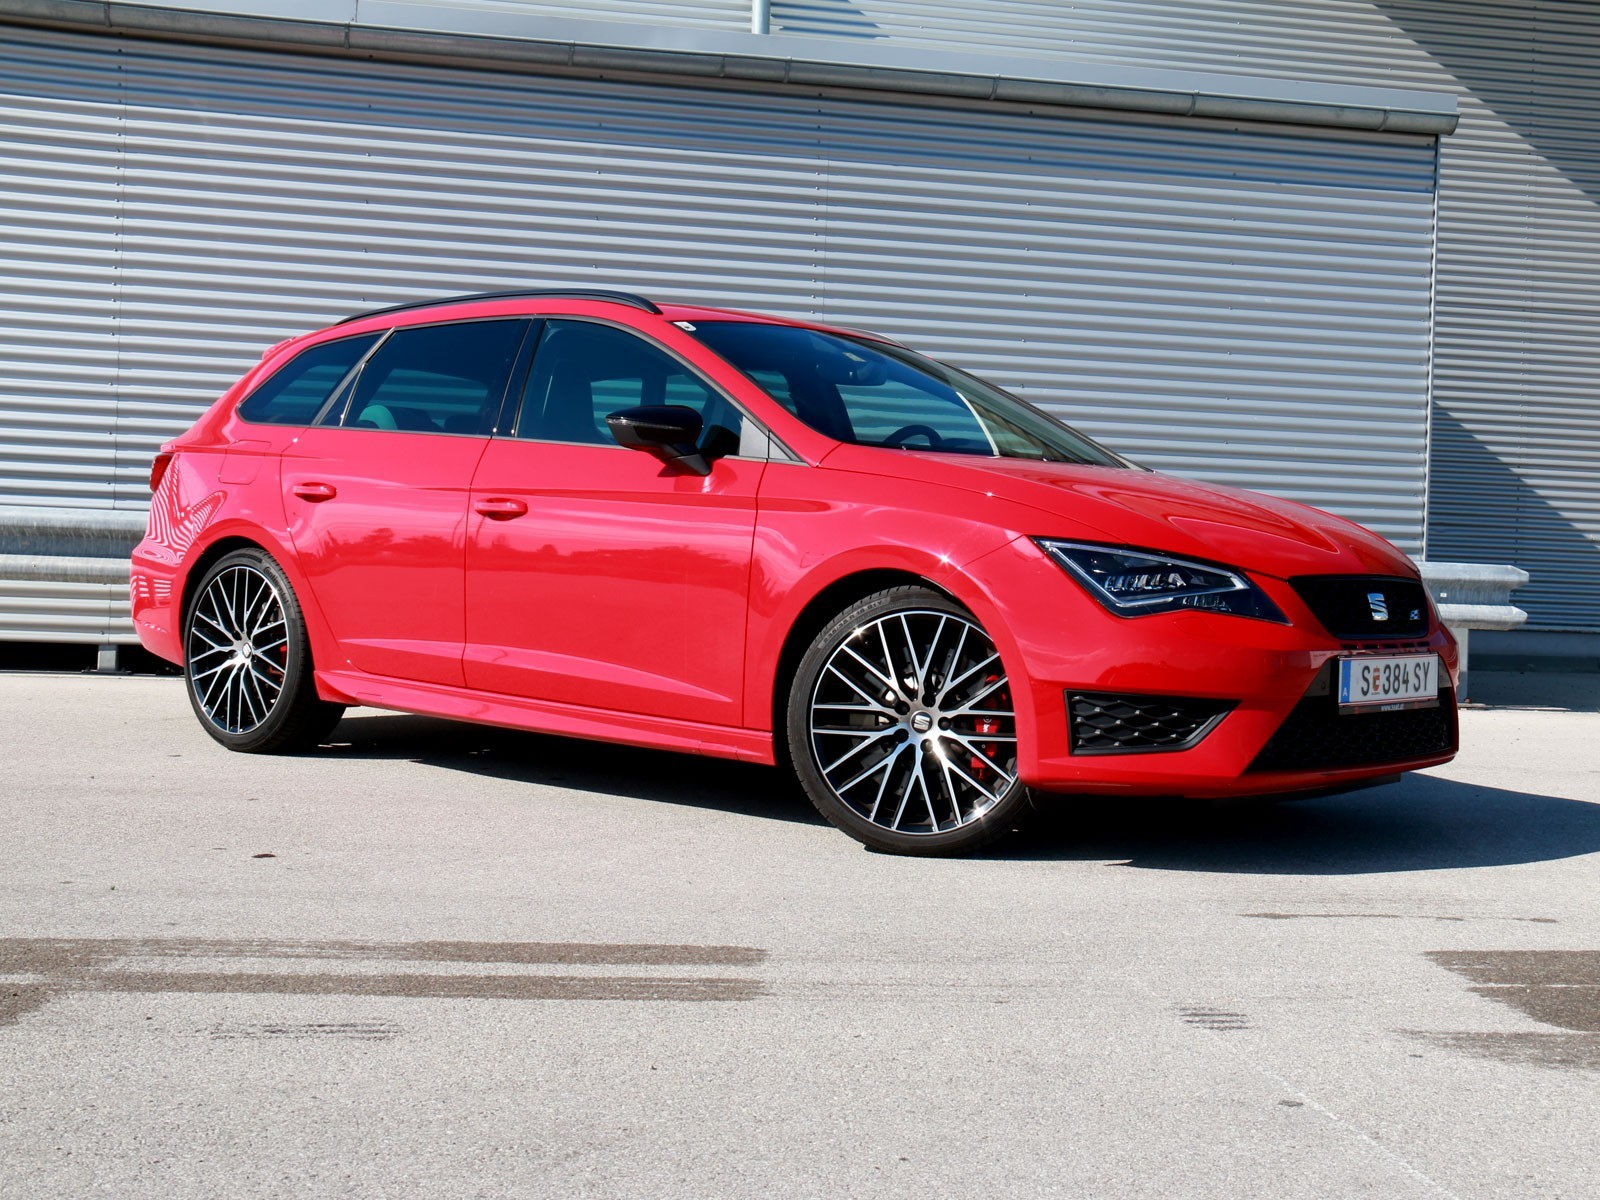 foto seat leon st cupra 290 tsi dsg testbericht vom artikel seat leon st cupra im test. Black Bedroom Furniture Sets. Home Design Ideas